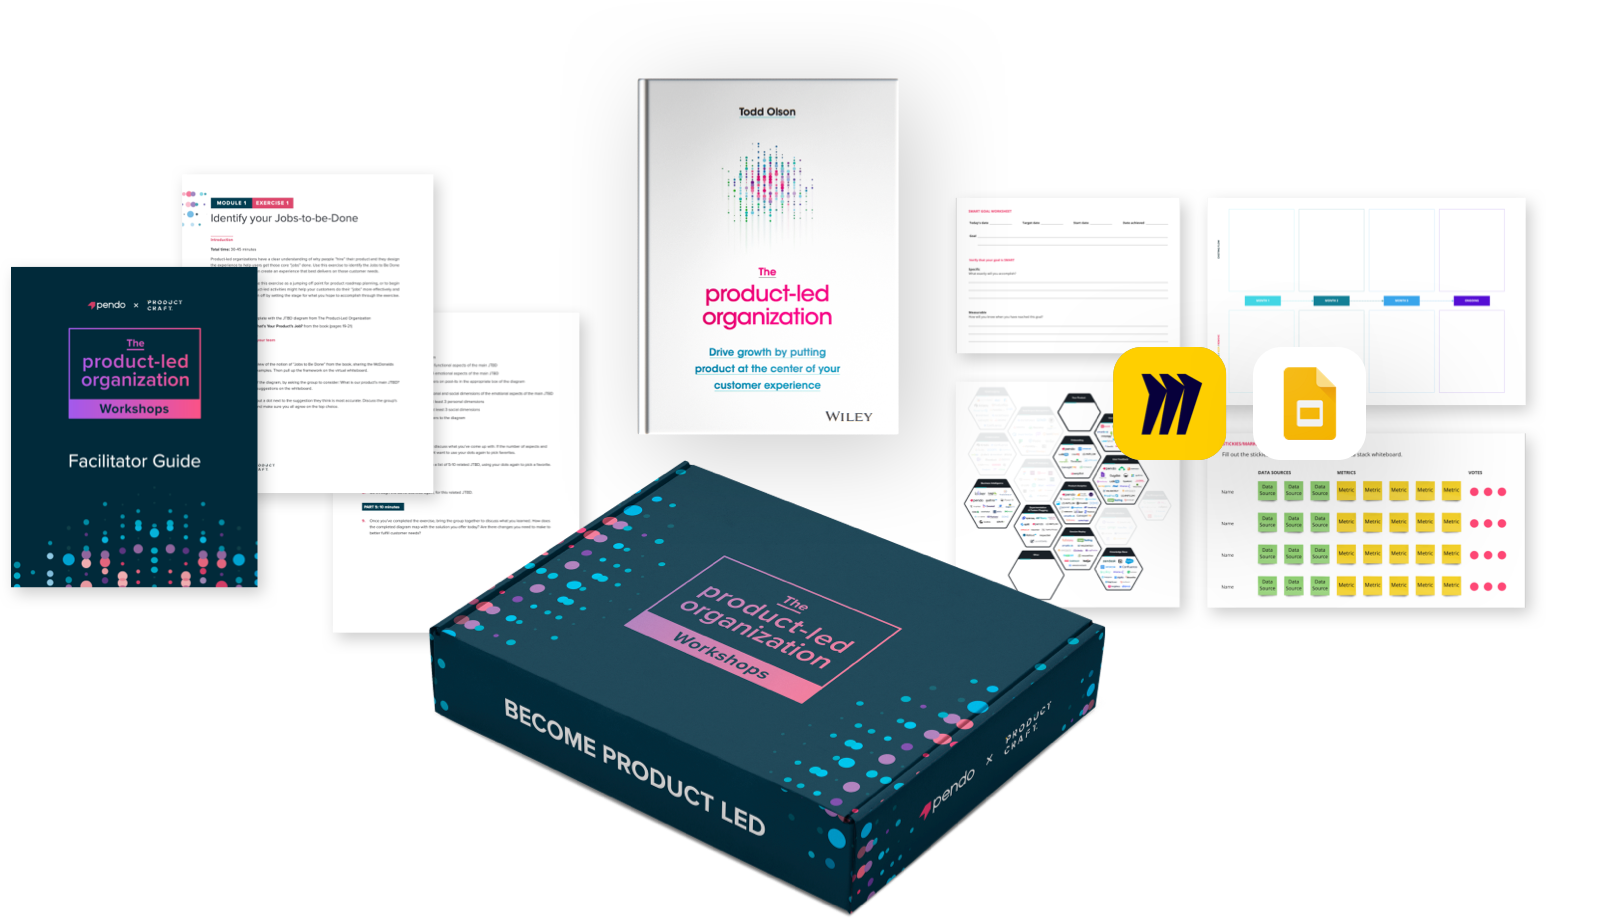 Product-Led Organization workshops in a box